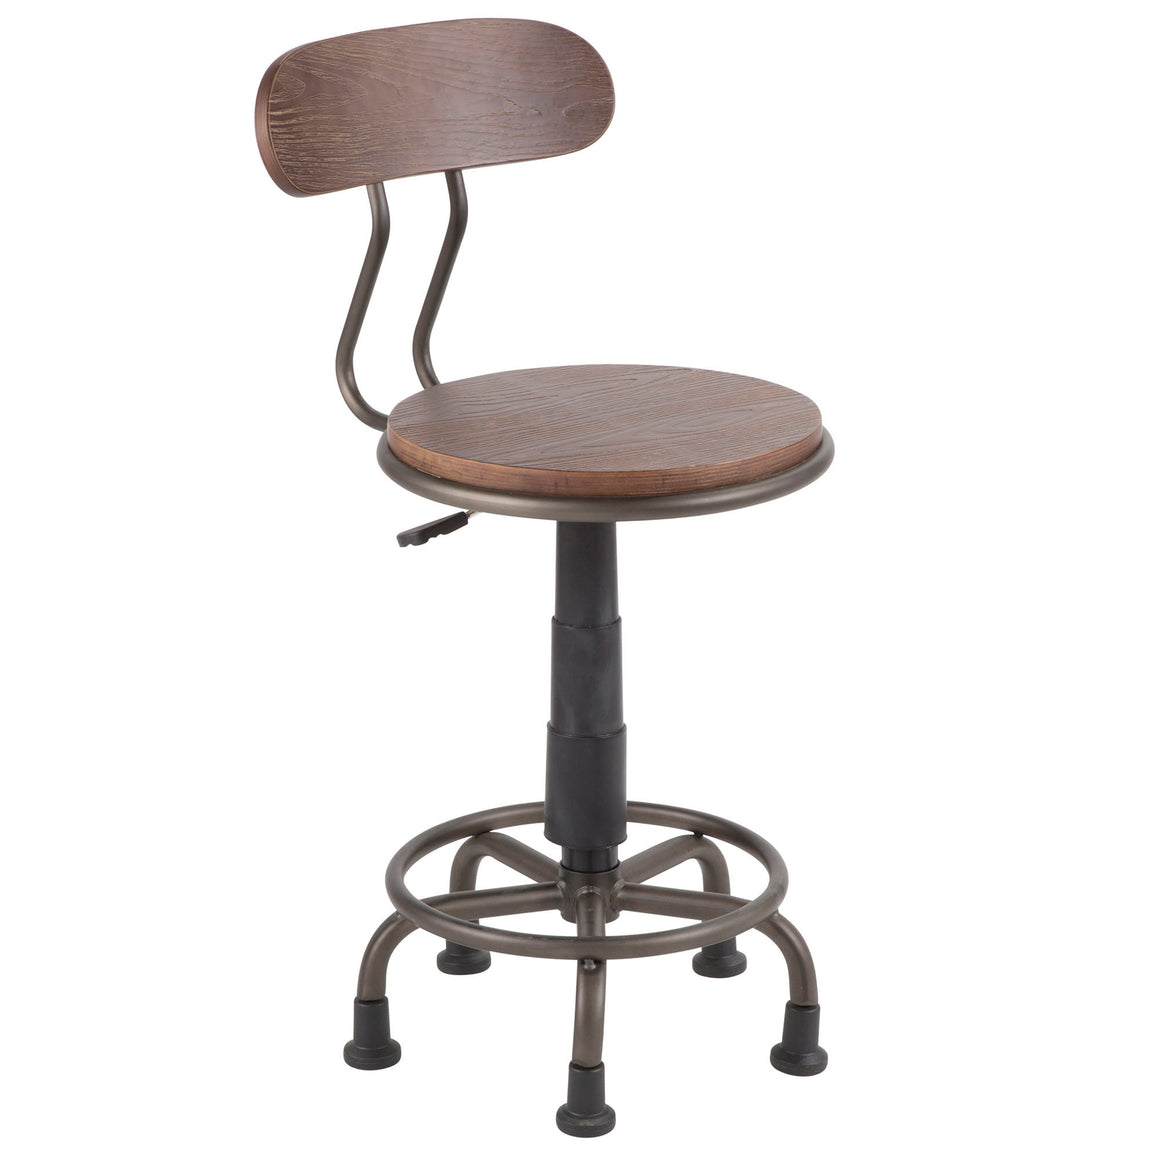 Dakota Industrial Task Chair in Antique Metal and Espresso Wood by LumiSource